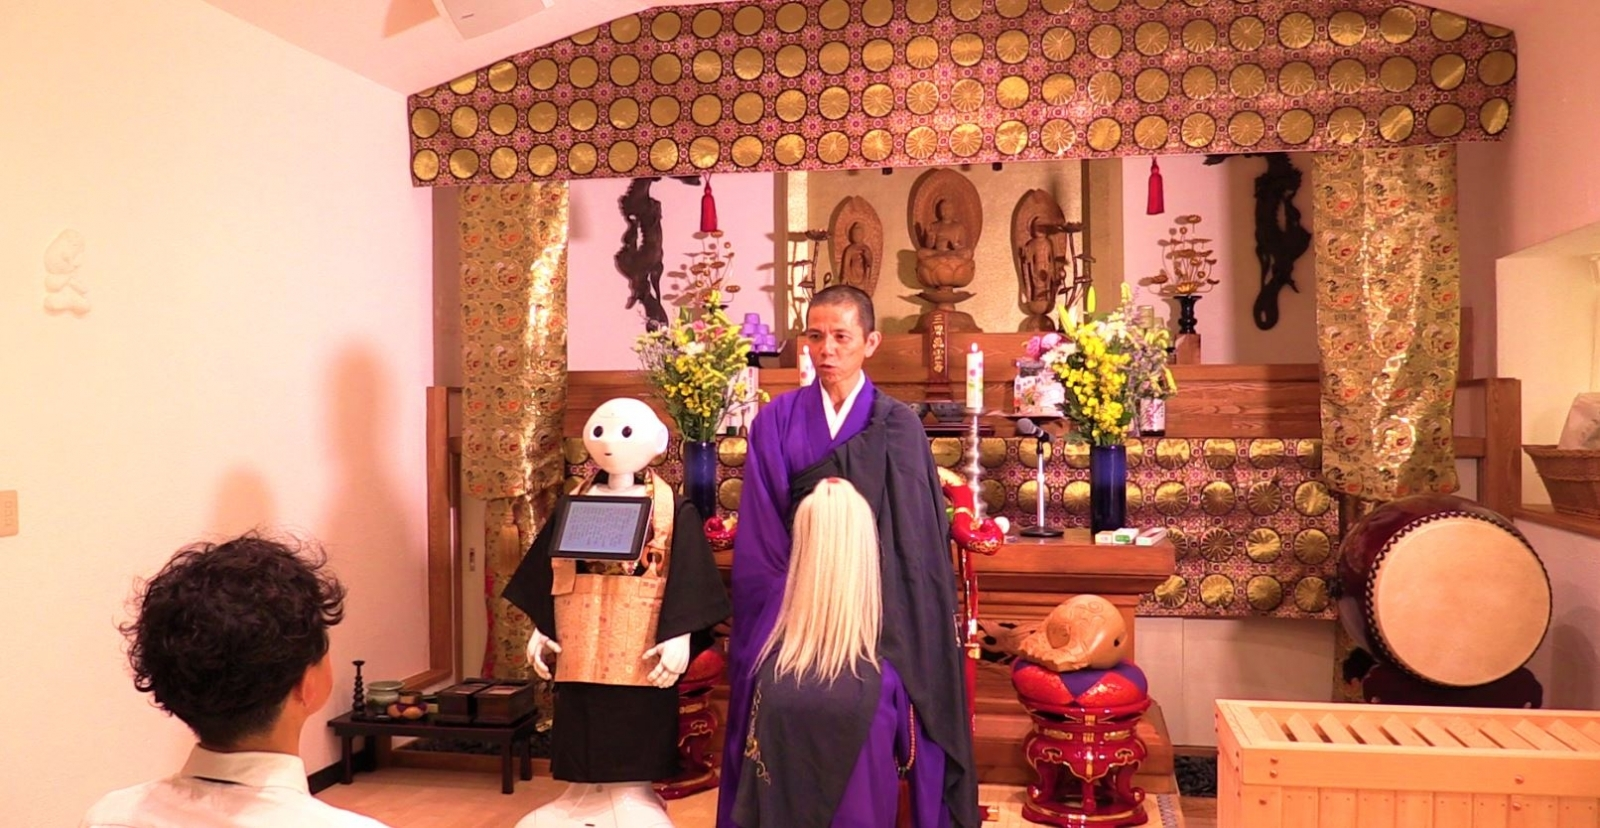 Pepper robot priest Japan